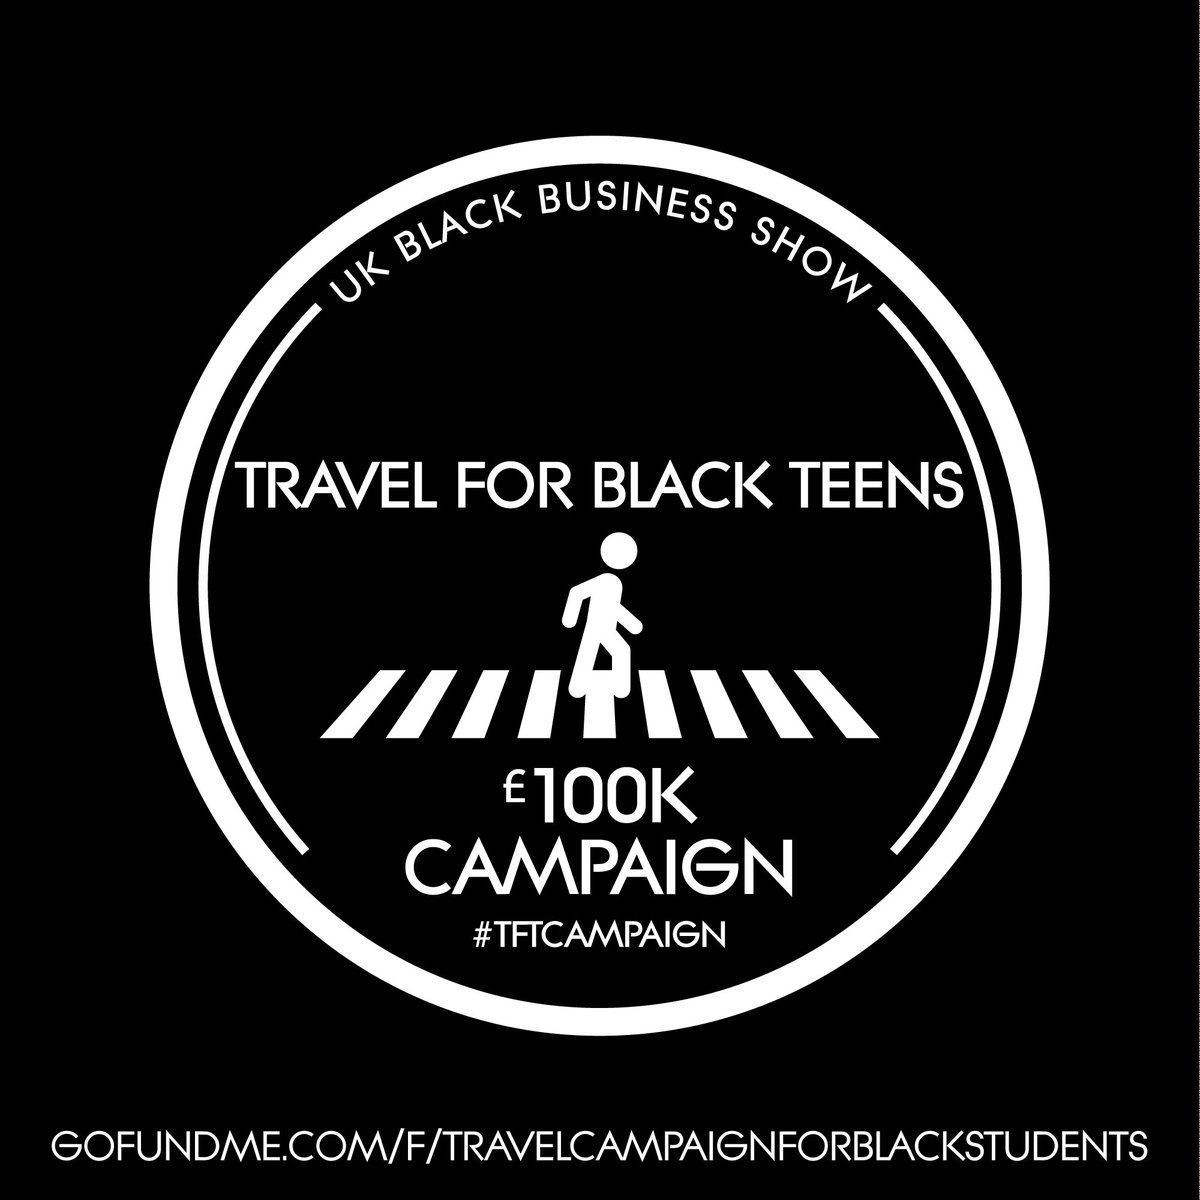 TfL announced that free travel for under-18s will be temporarily suspended.  The @UKBBSHOW team and I are  determined to ensure that despite this major change to student travel, the education of black students is not negatively impacted.  Please donate  https://t.co/4g7YihhQds https://t.co/KVOZJMZxJd